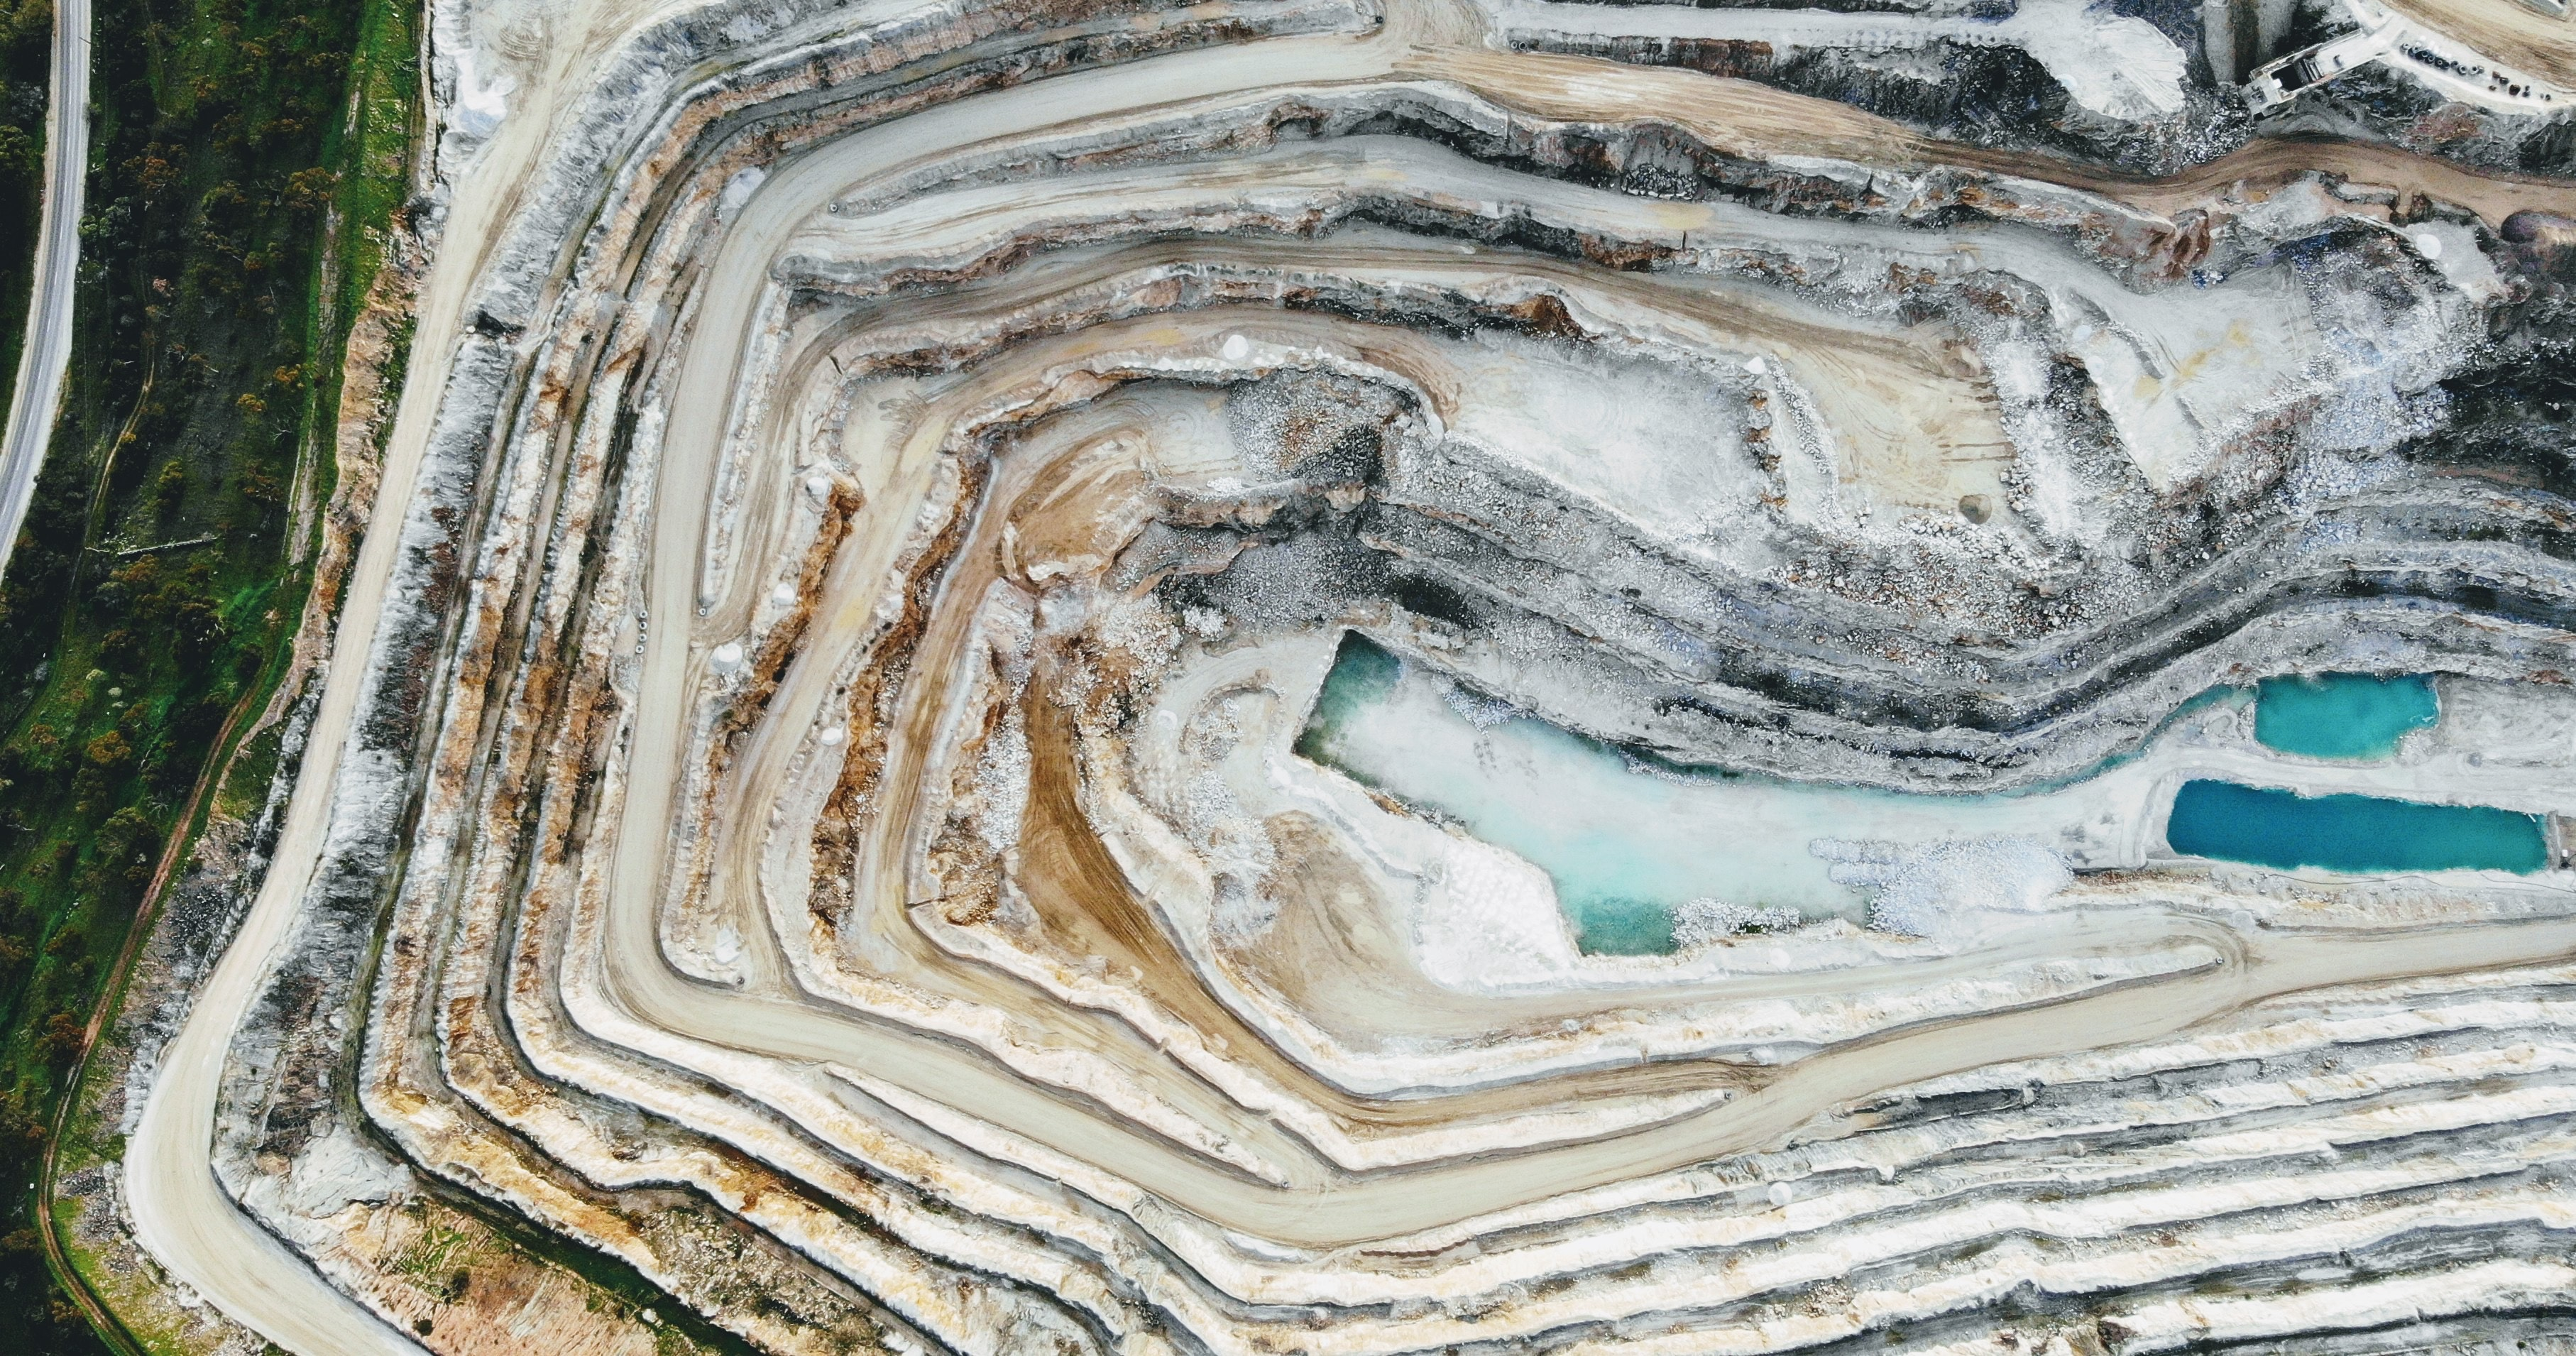 Lithium Stocks Surge, but it Can't Last Without Pricing Rebound